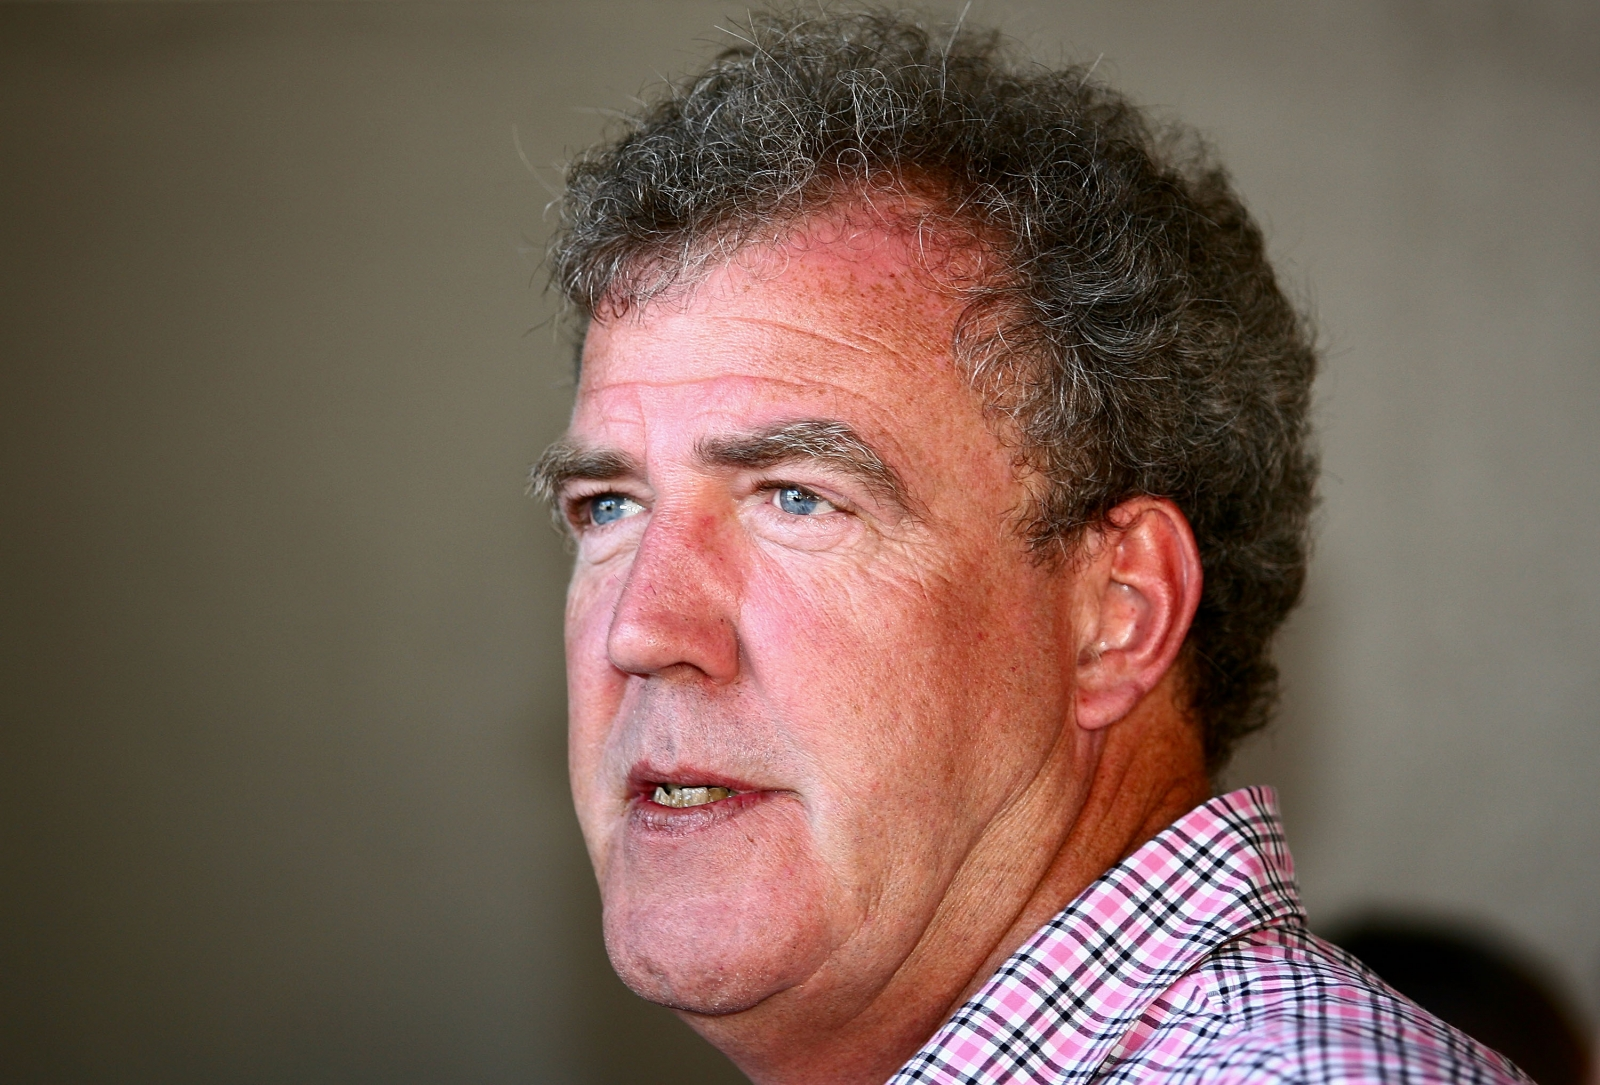 BBC presenter Jeremy Clarkson finds himself in hot water again.